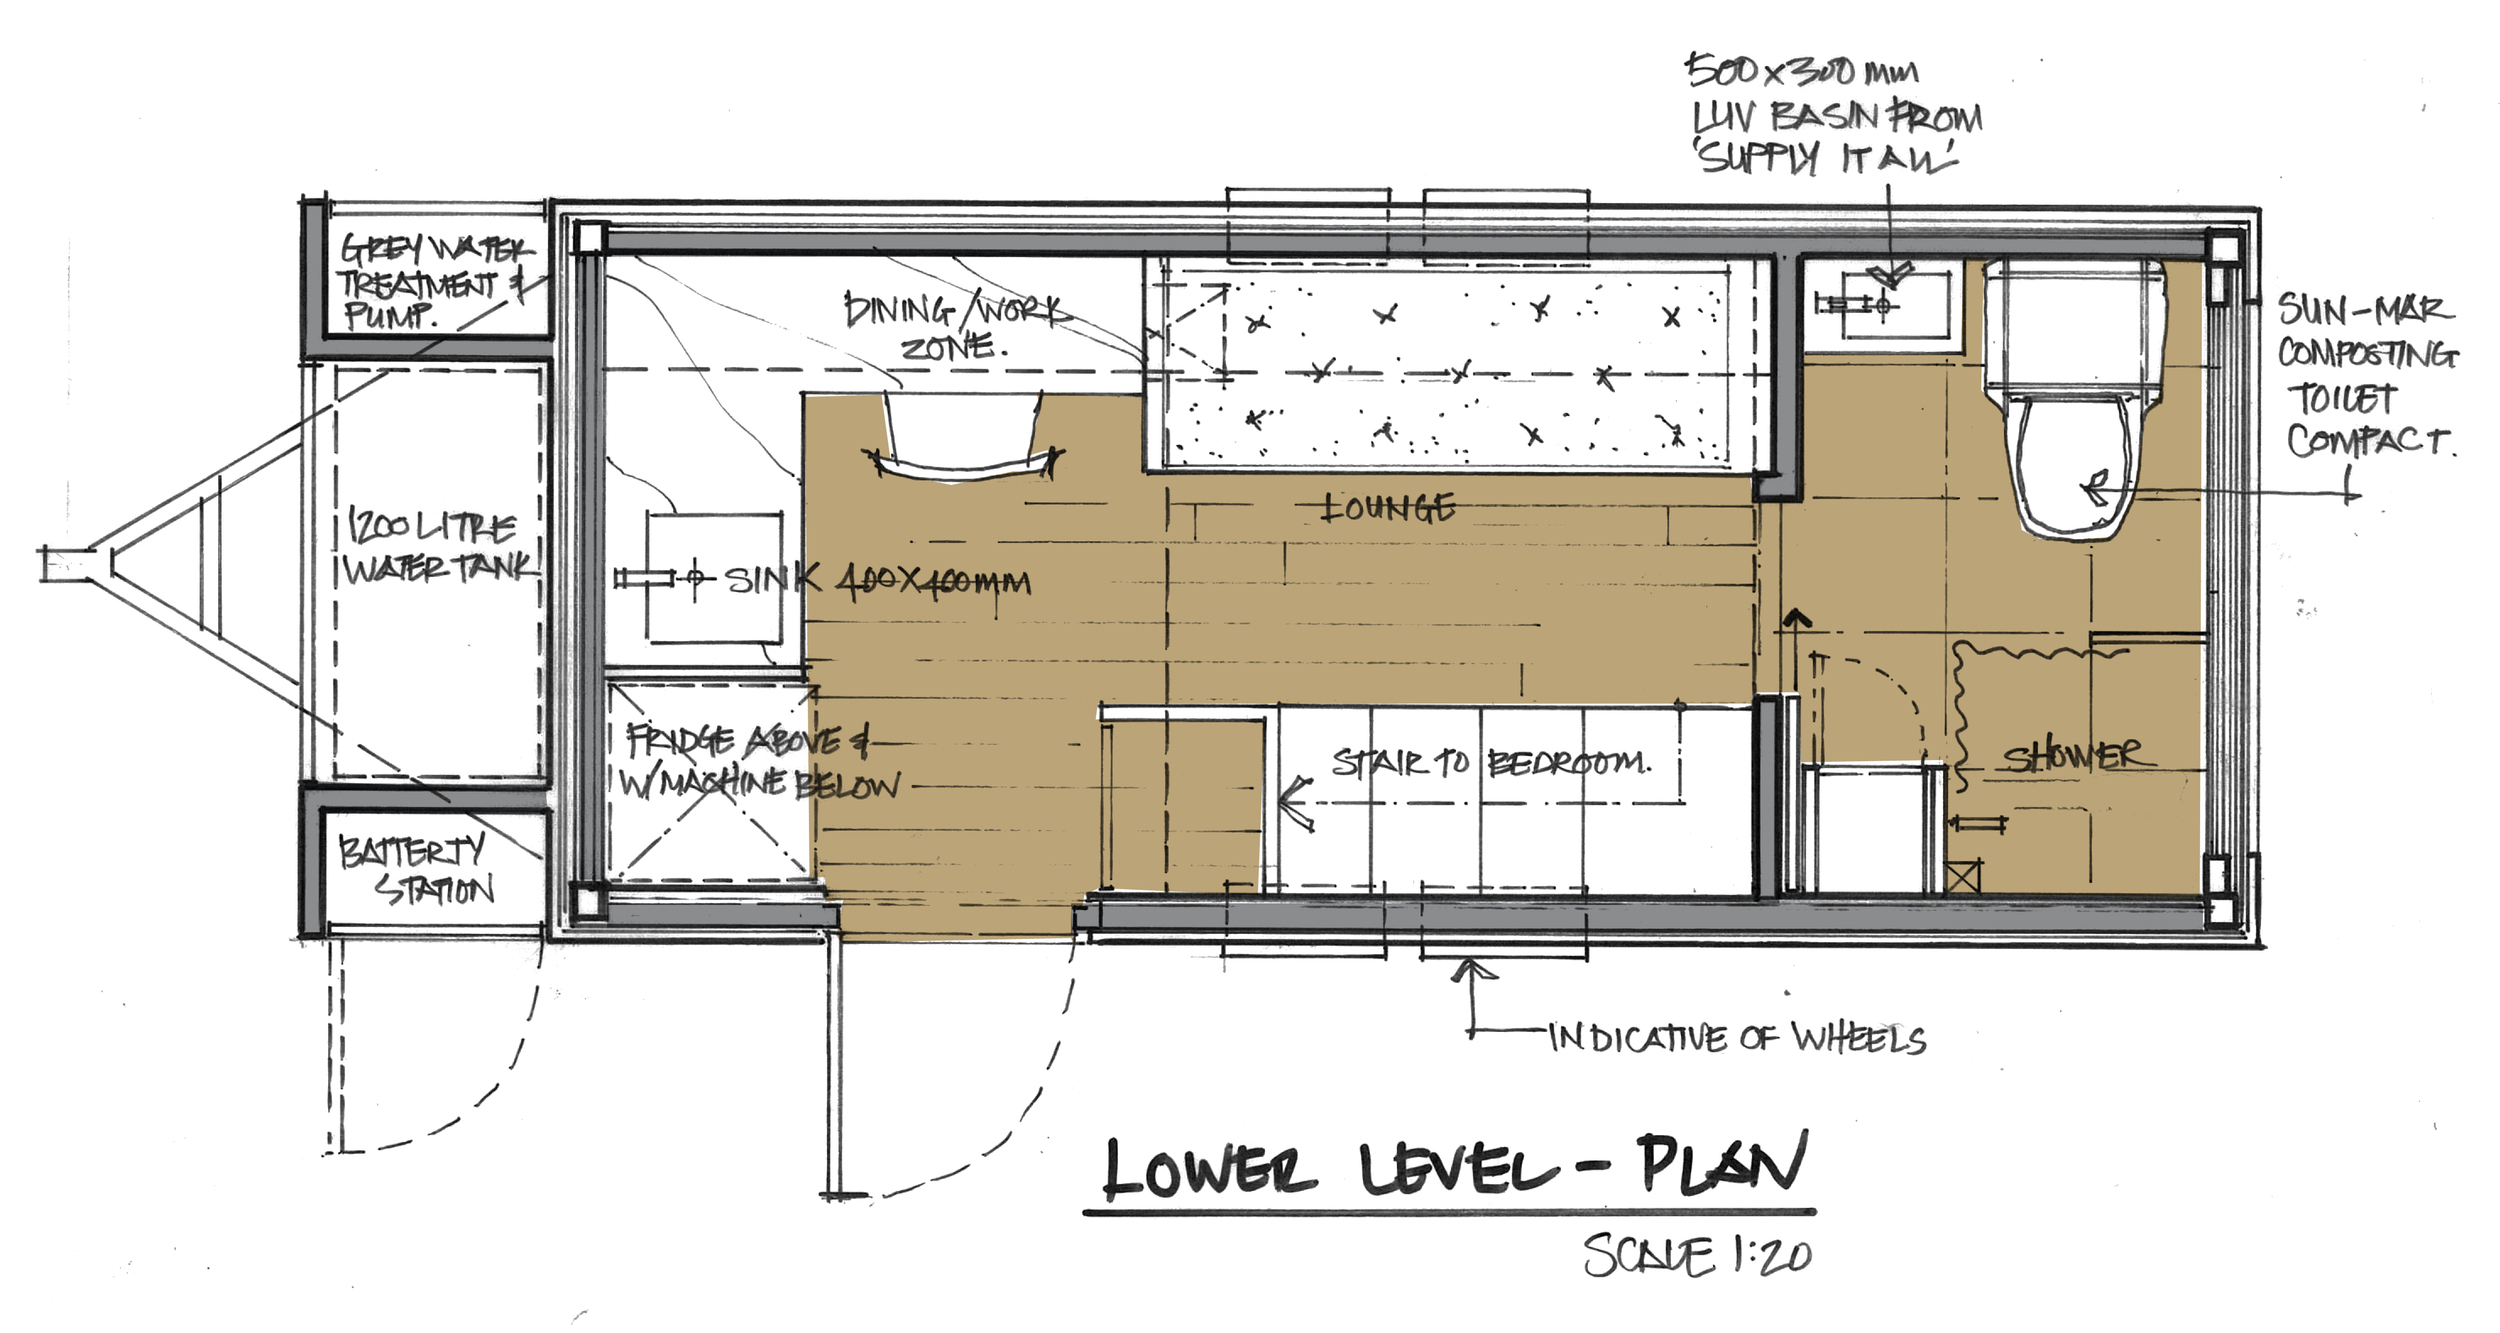 GROUND FLOOR SKETCH PLAN